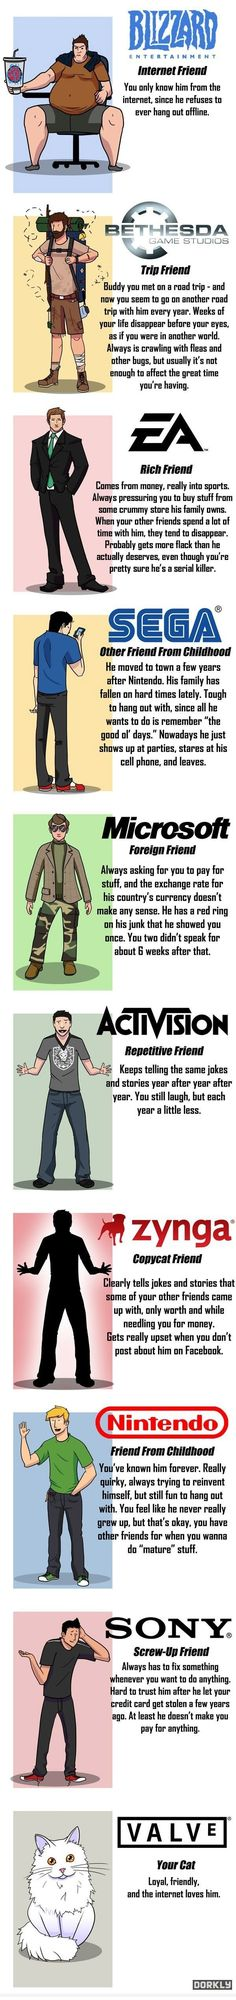 Game companies as friends